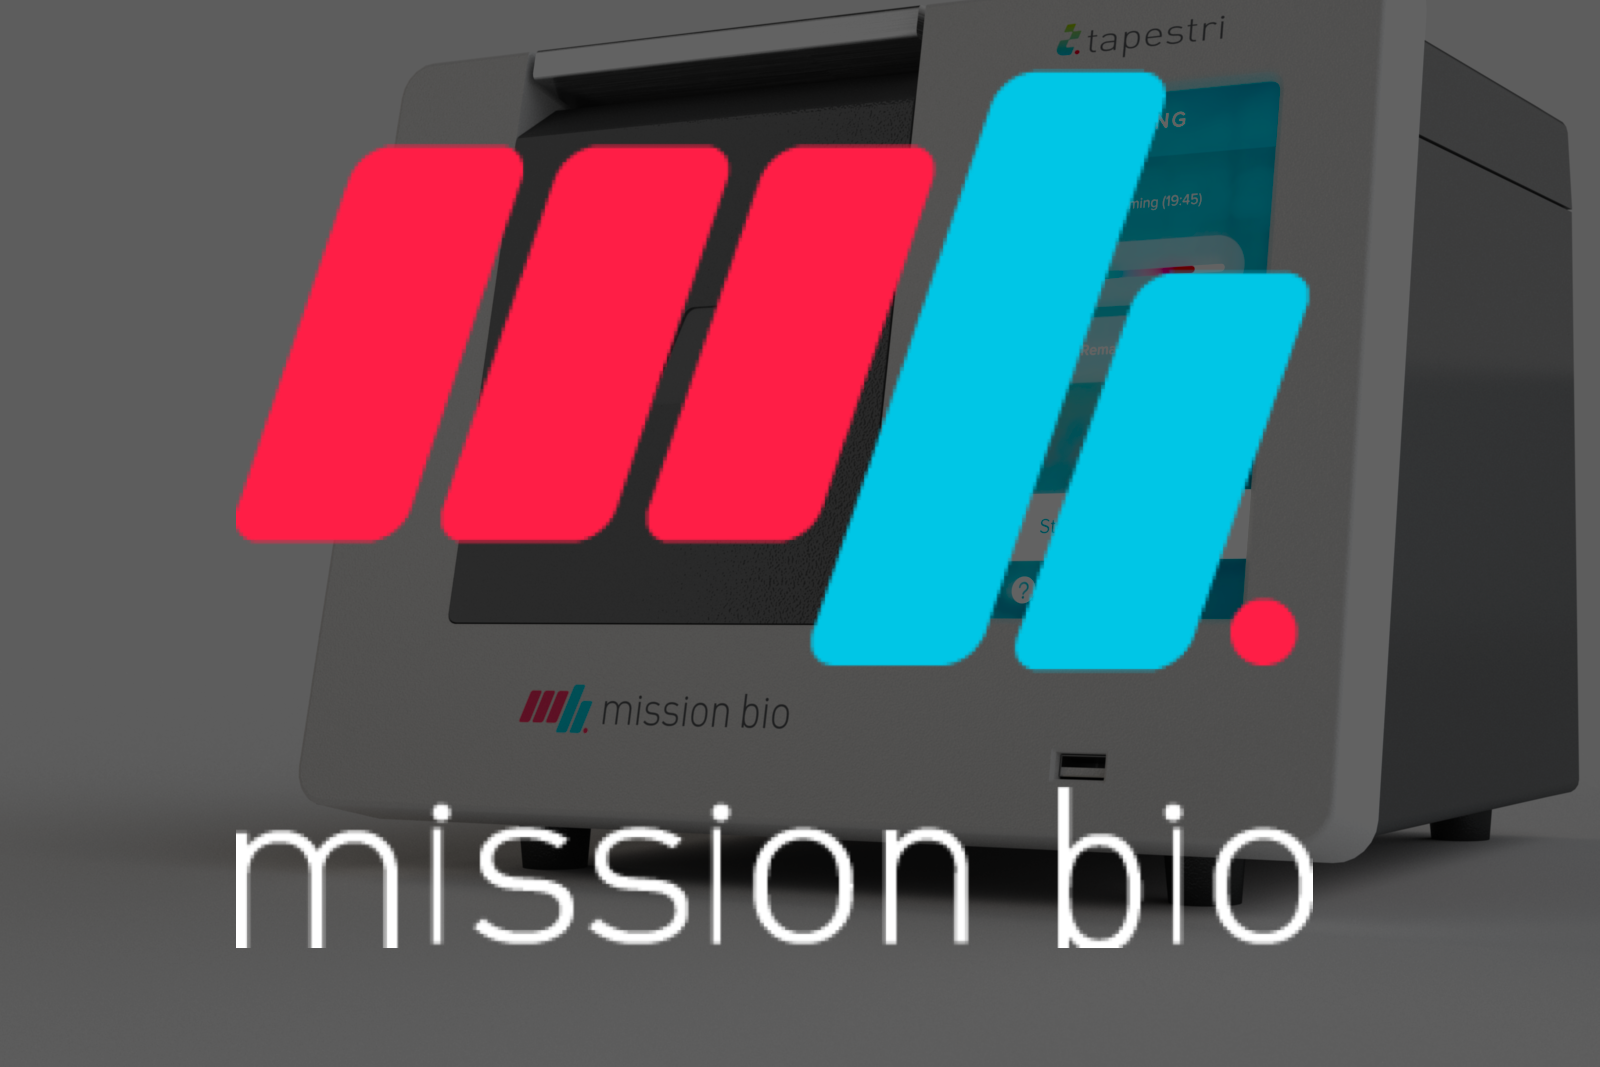 Their mission is to help researchers and clinicians unlock single-cell biology to enable the discovery, development, and delivery of precision medicine.